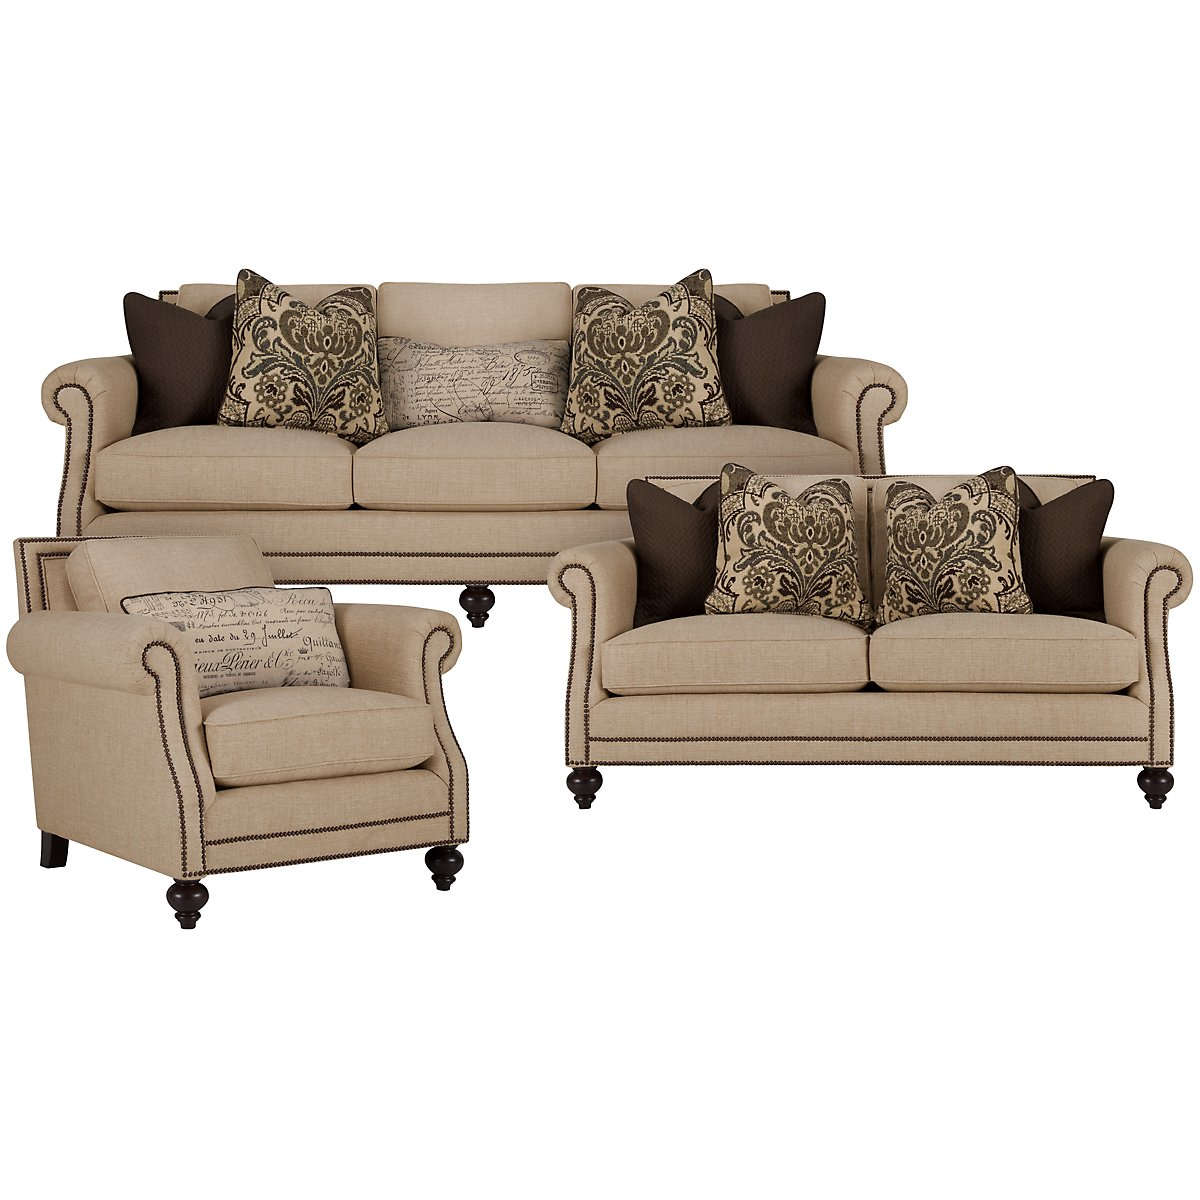 Bernhardt Brae Sofa Bernhardt Living Room Brae Sectional 832270 Furniture Fair Thesofa